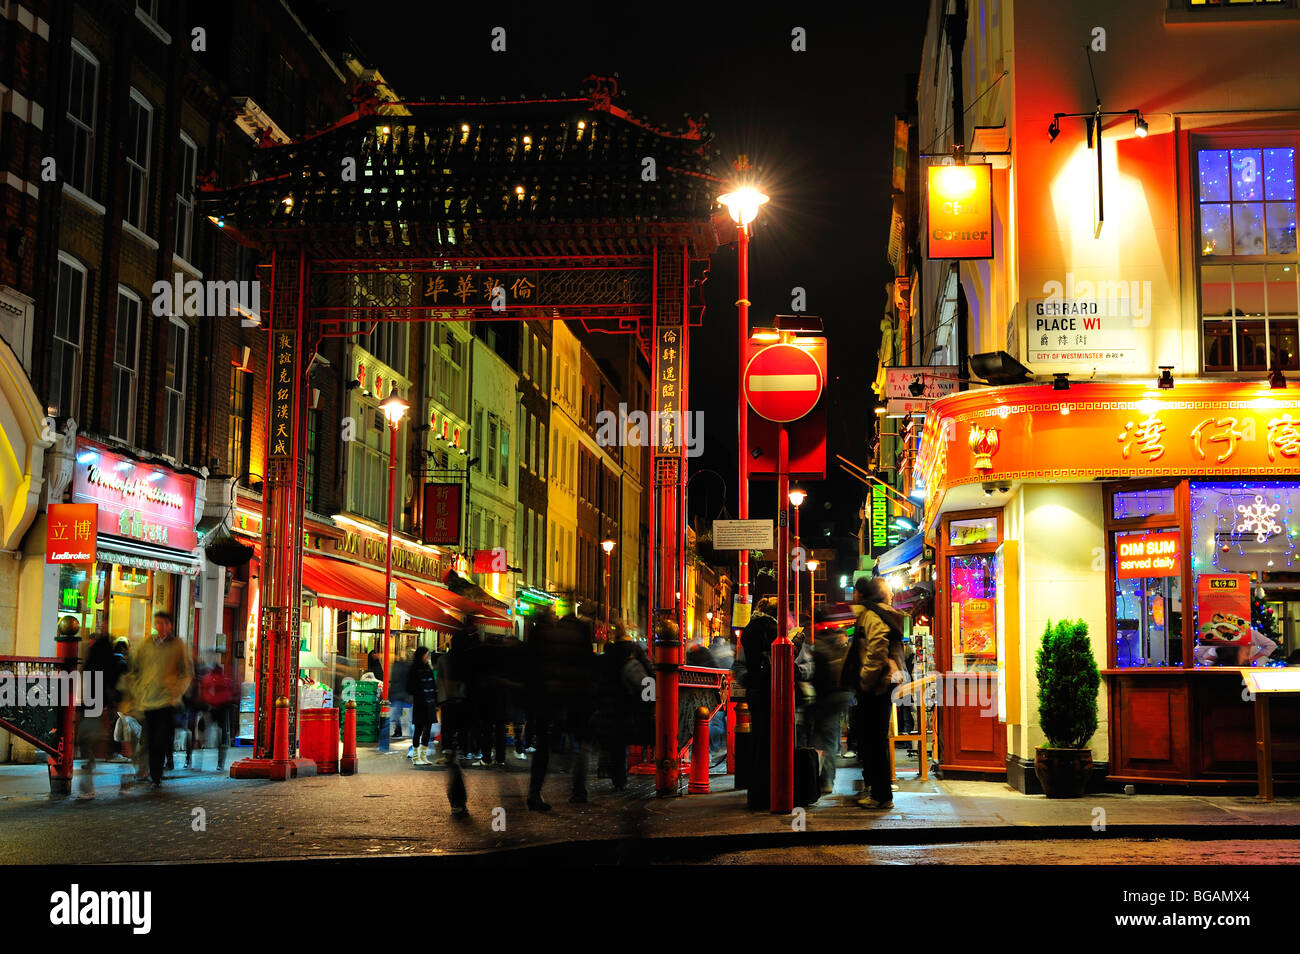 China town in London - Stock Image